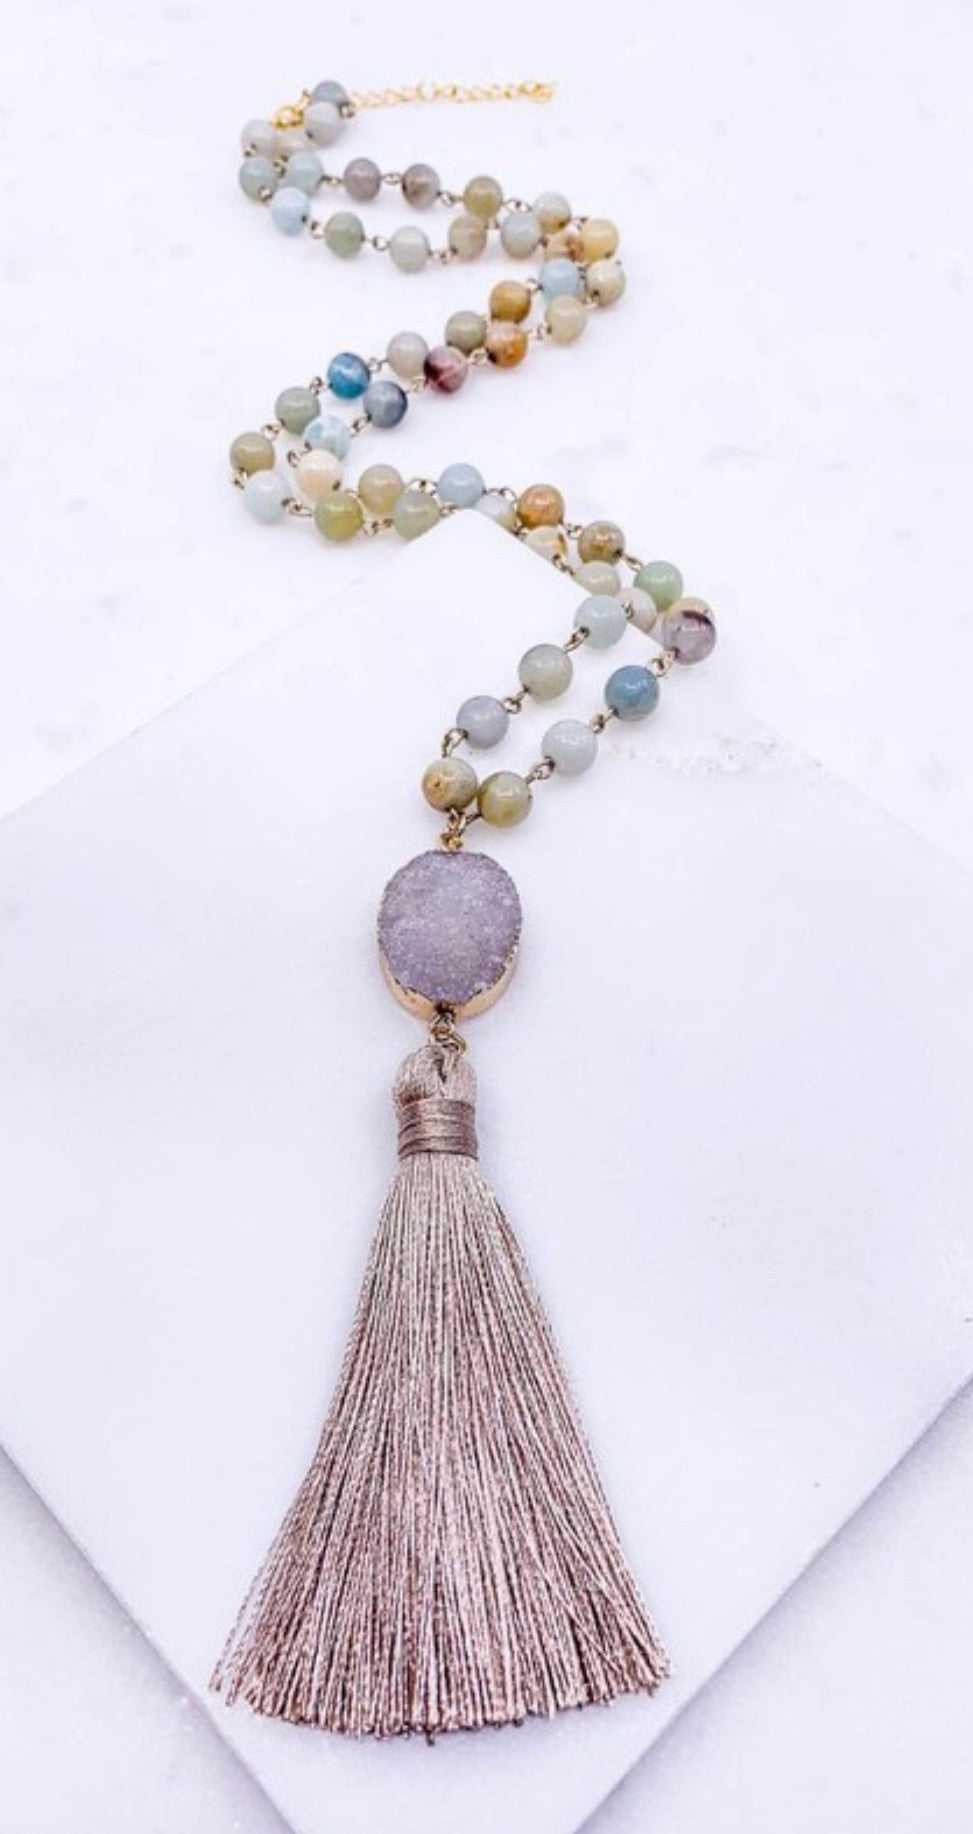 Stone tassel necklace on a semi precious stone beaded necklace | Cheeky Cactus